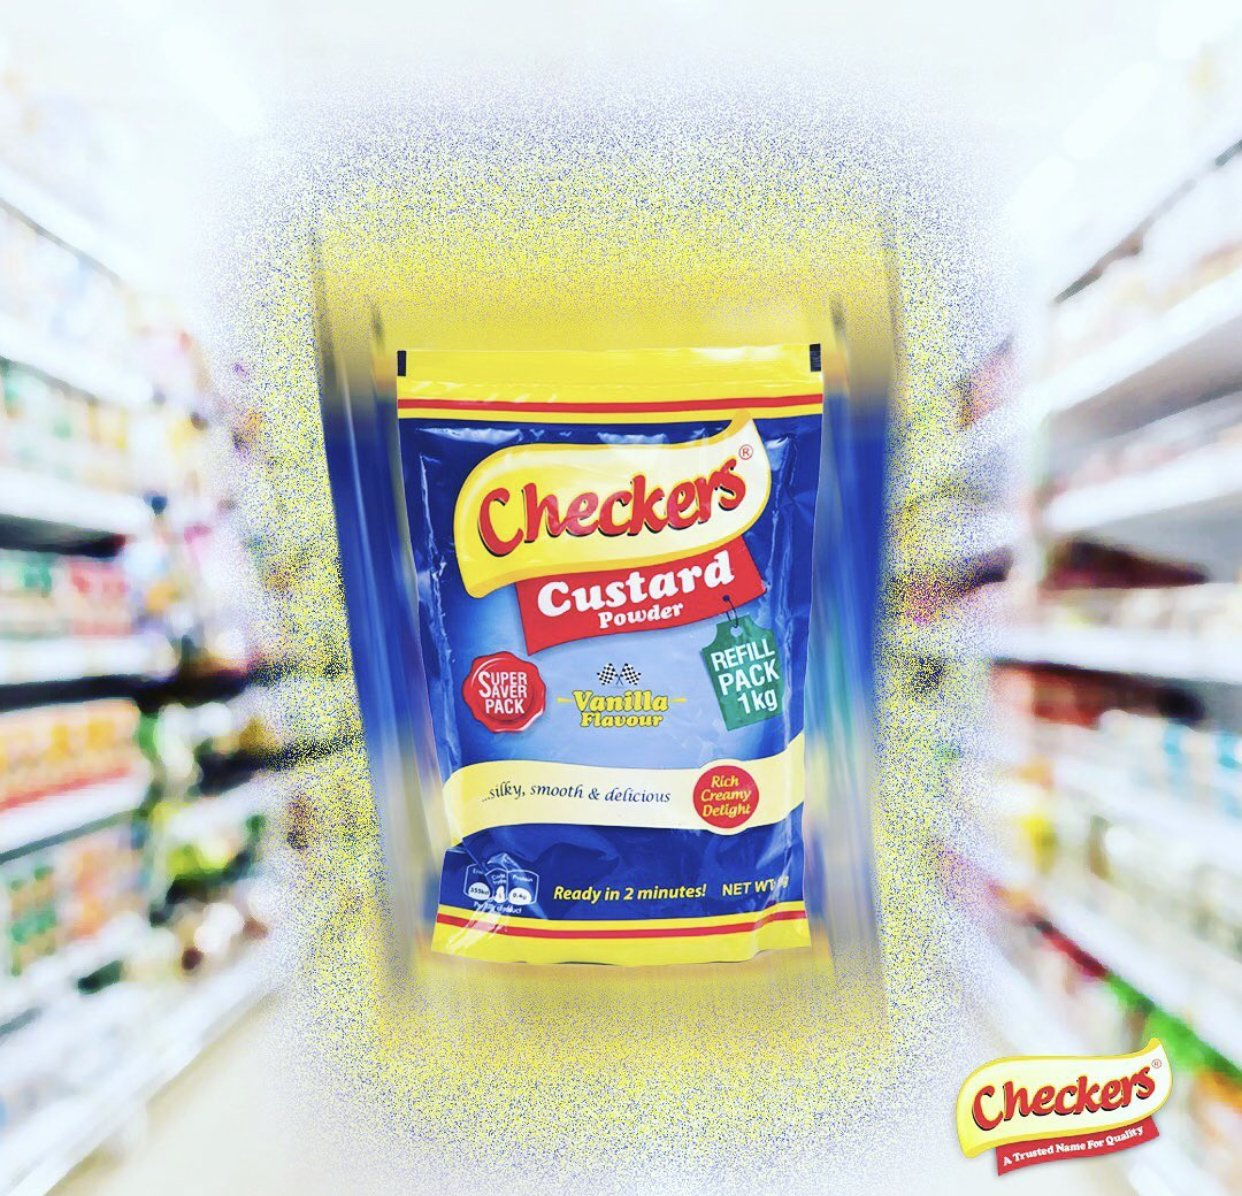 Checker's Custard-Wholesale